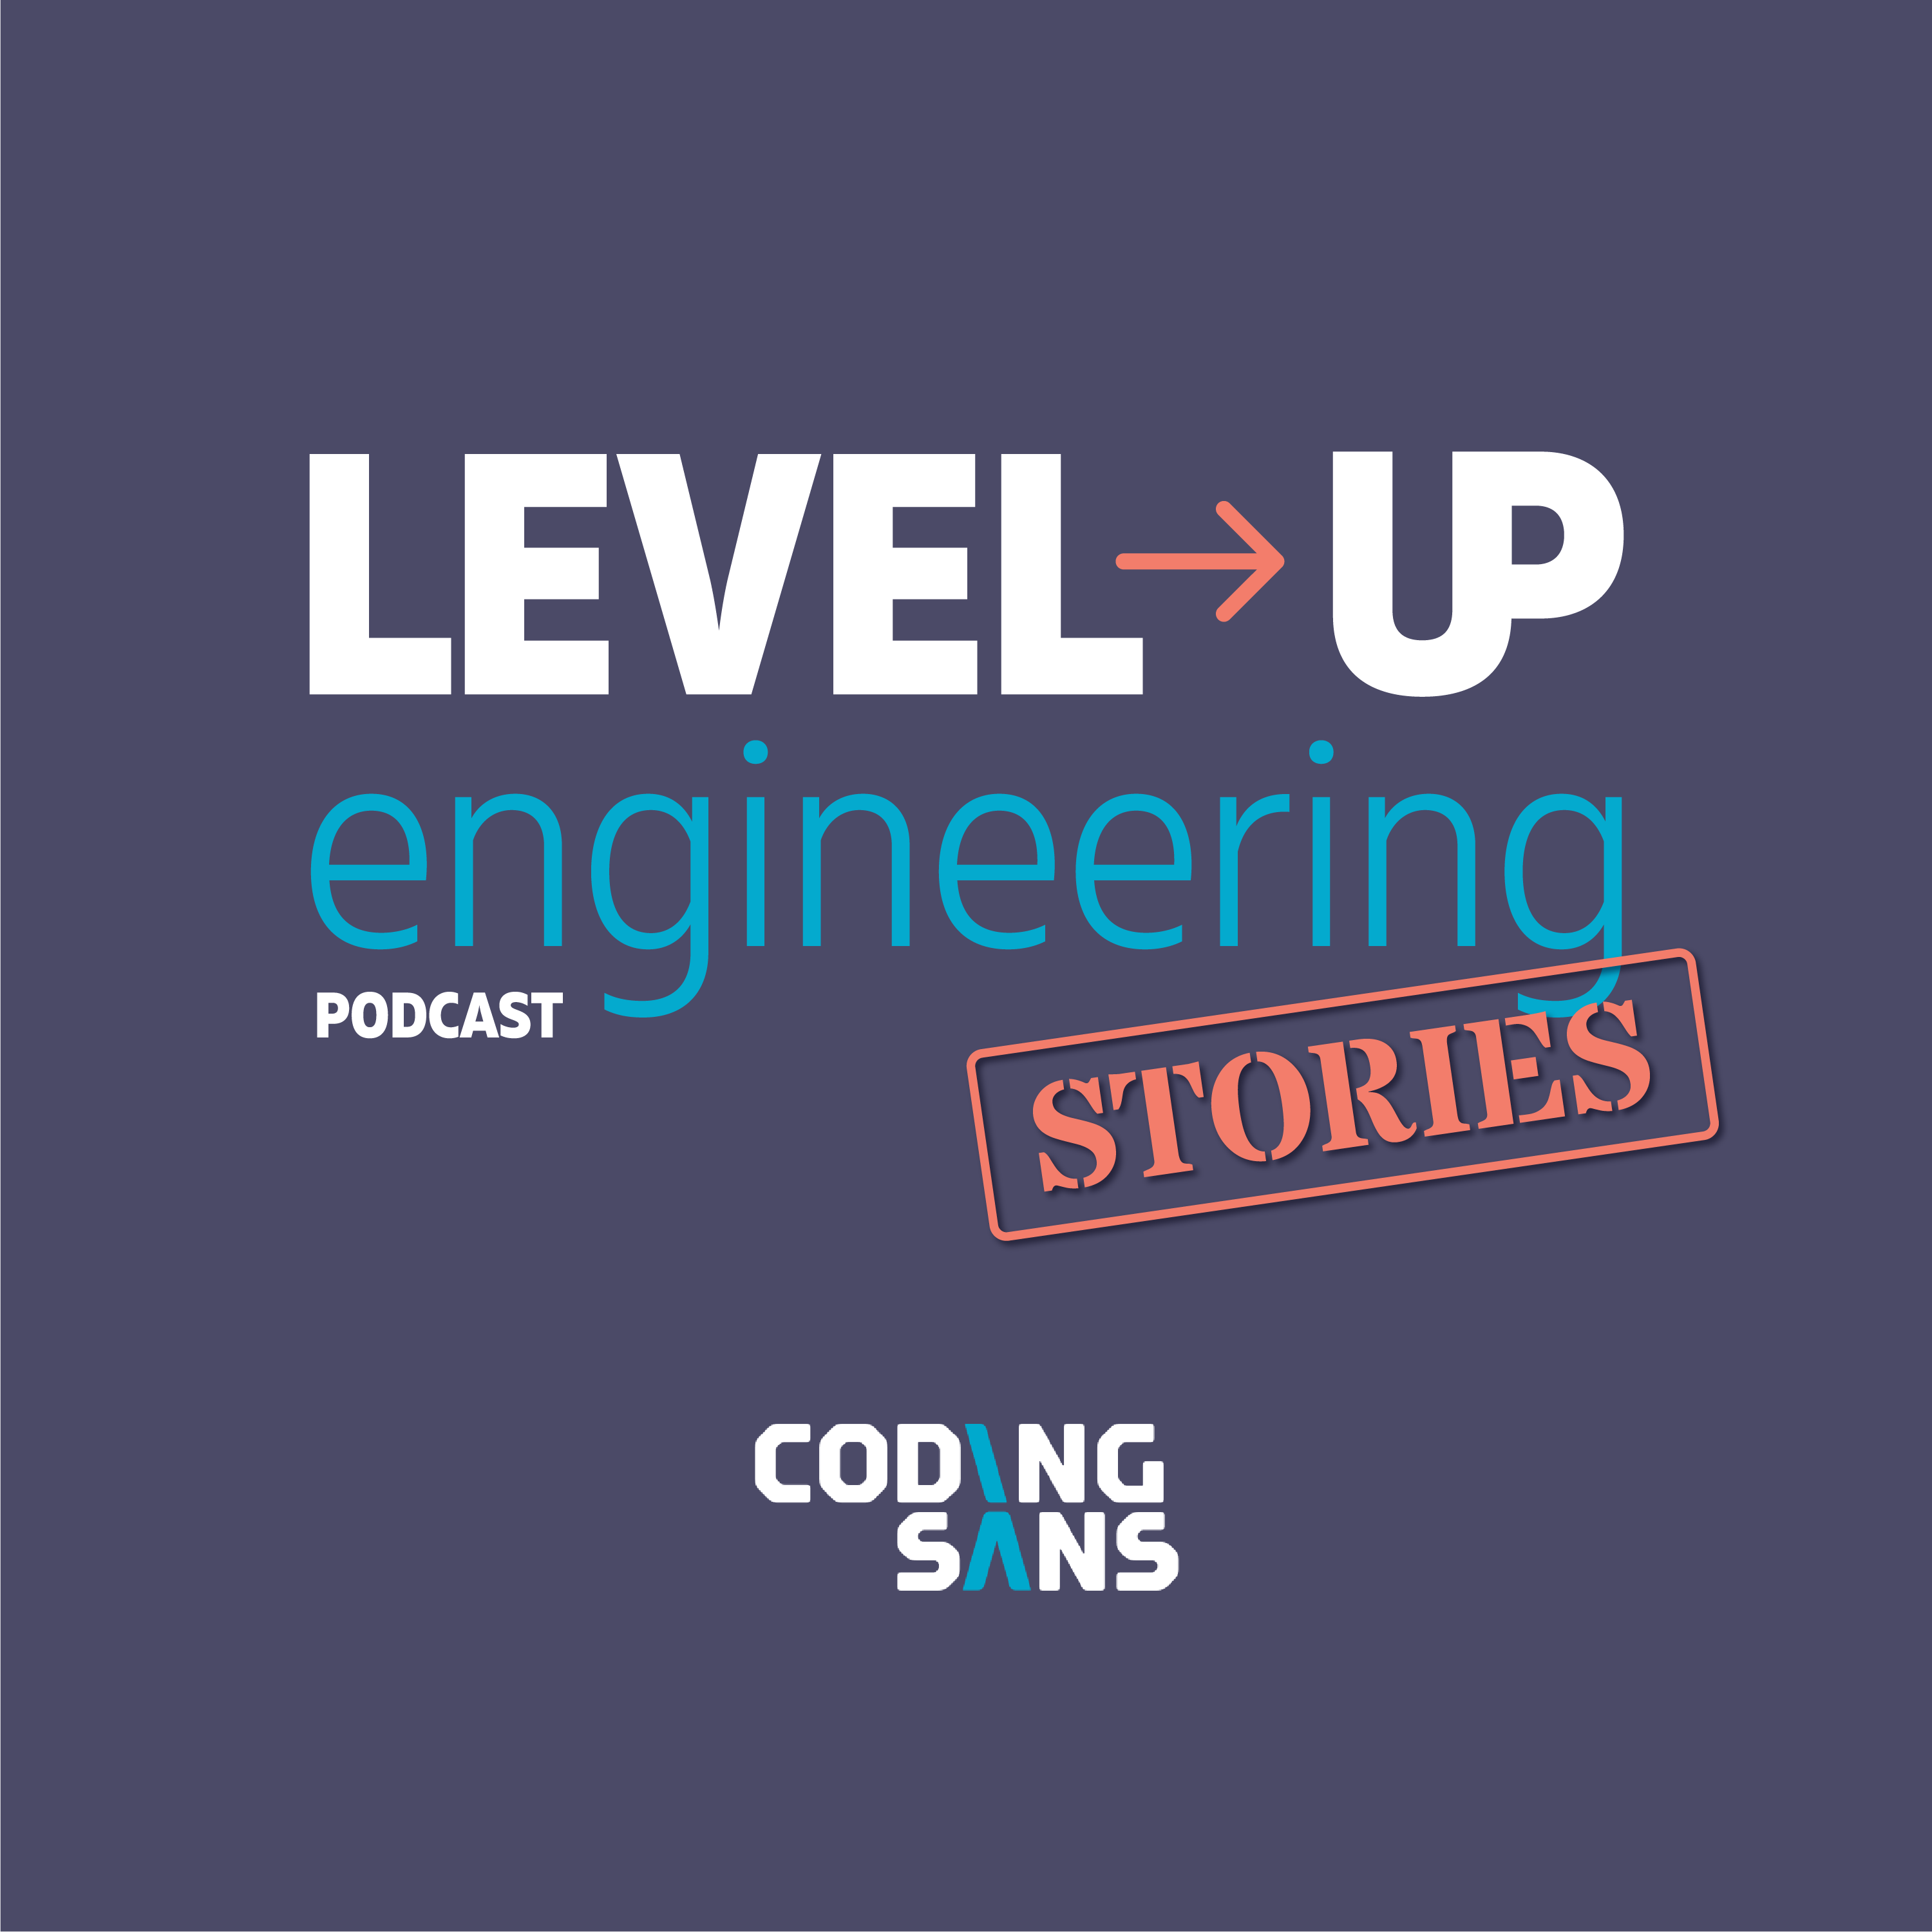 Artwork for podcast Level-up Engineering